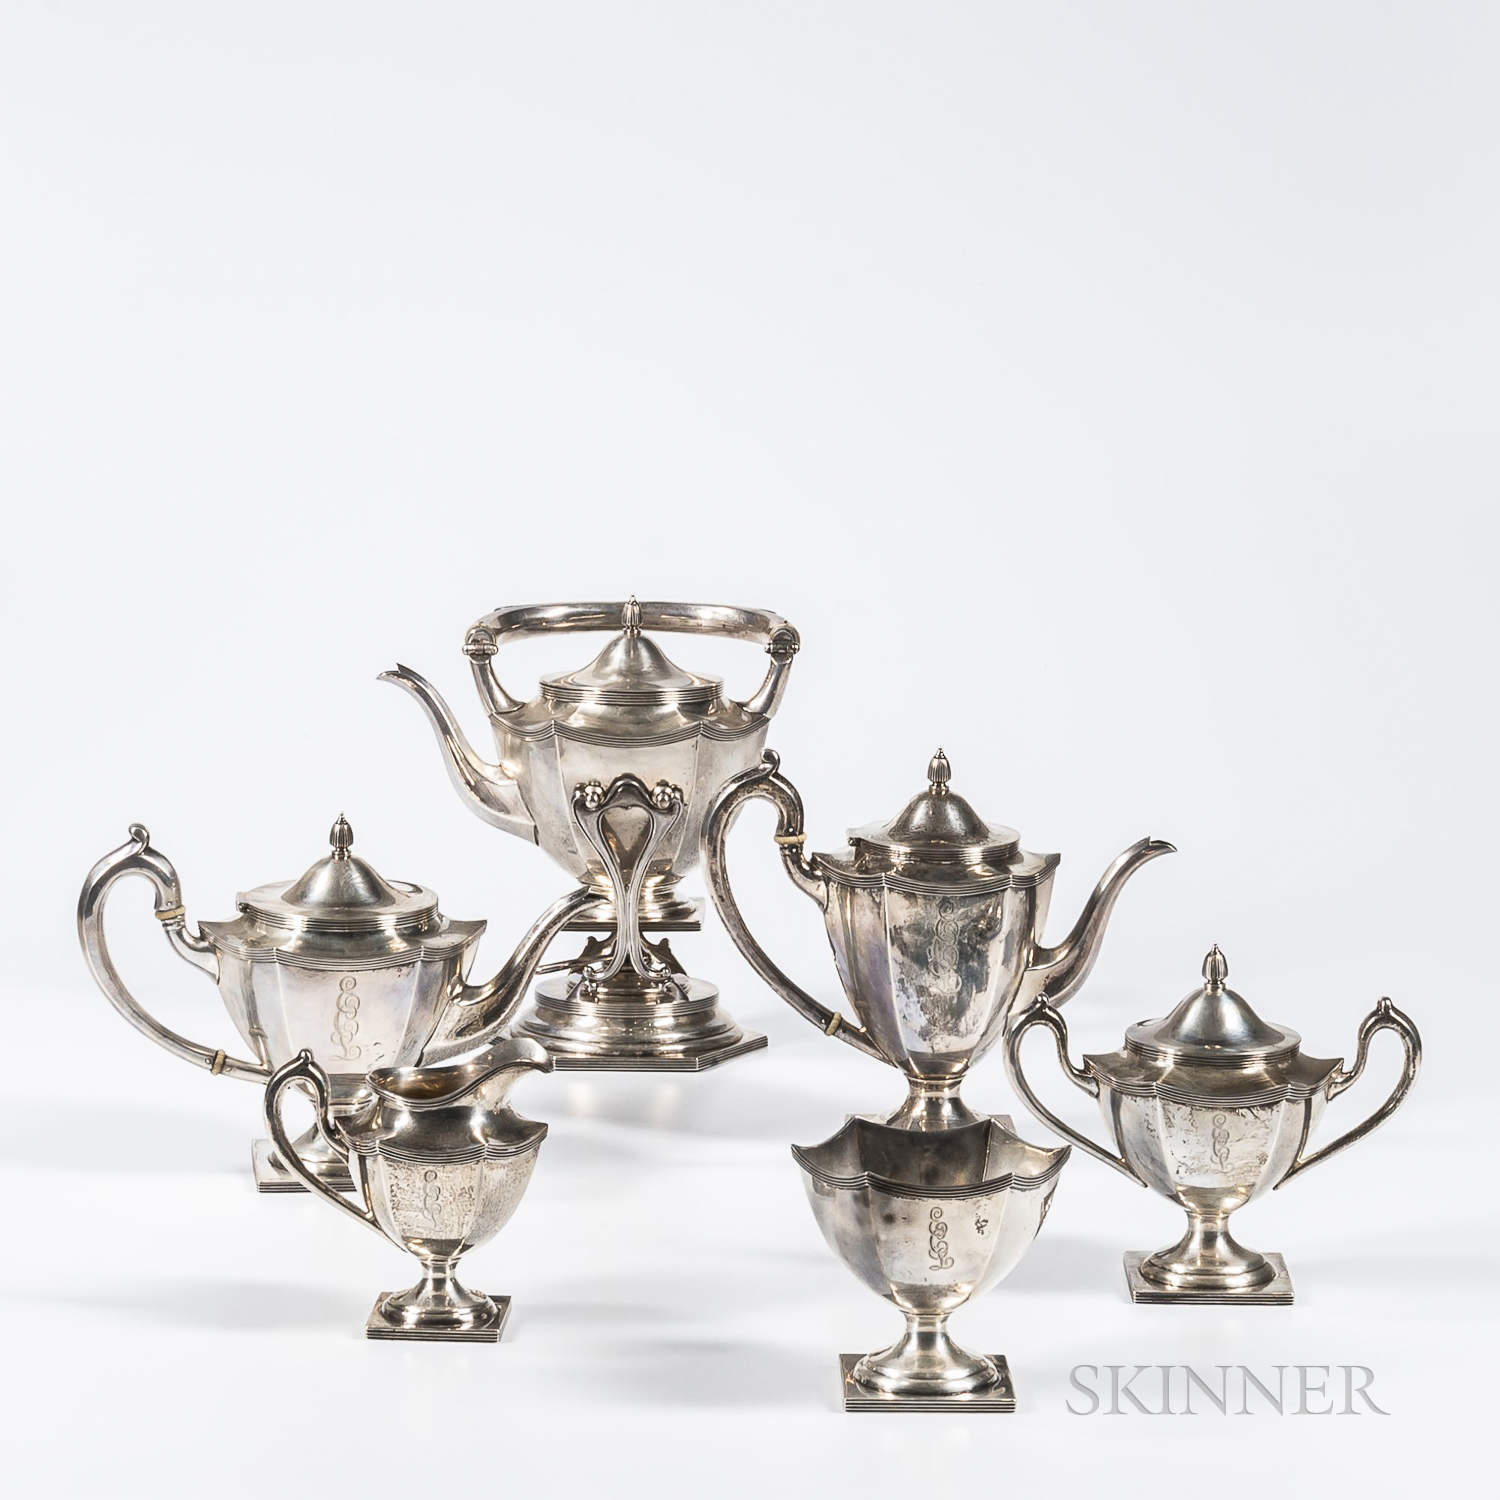 Six-piece Sterling Silver Tea and Coffee Service